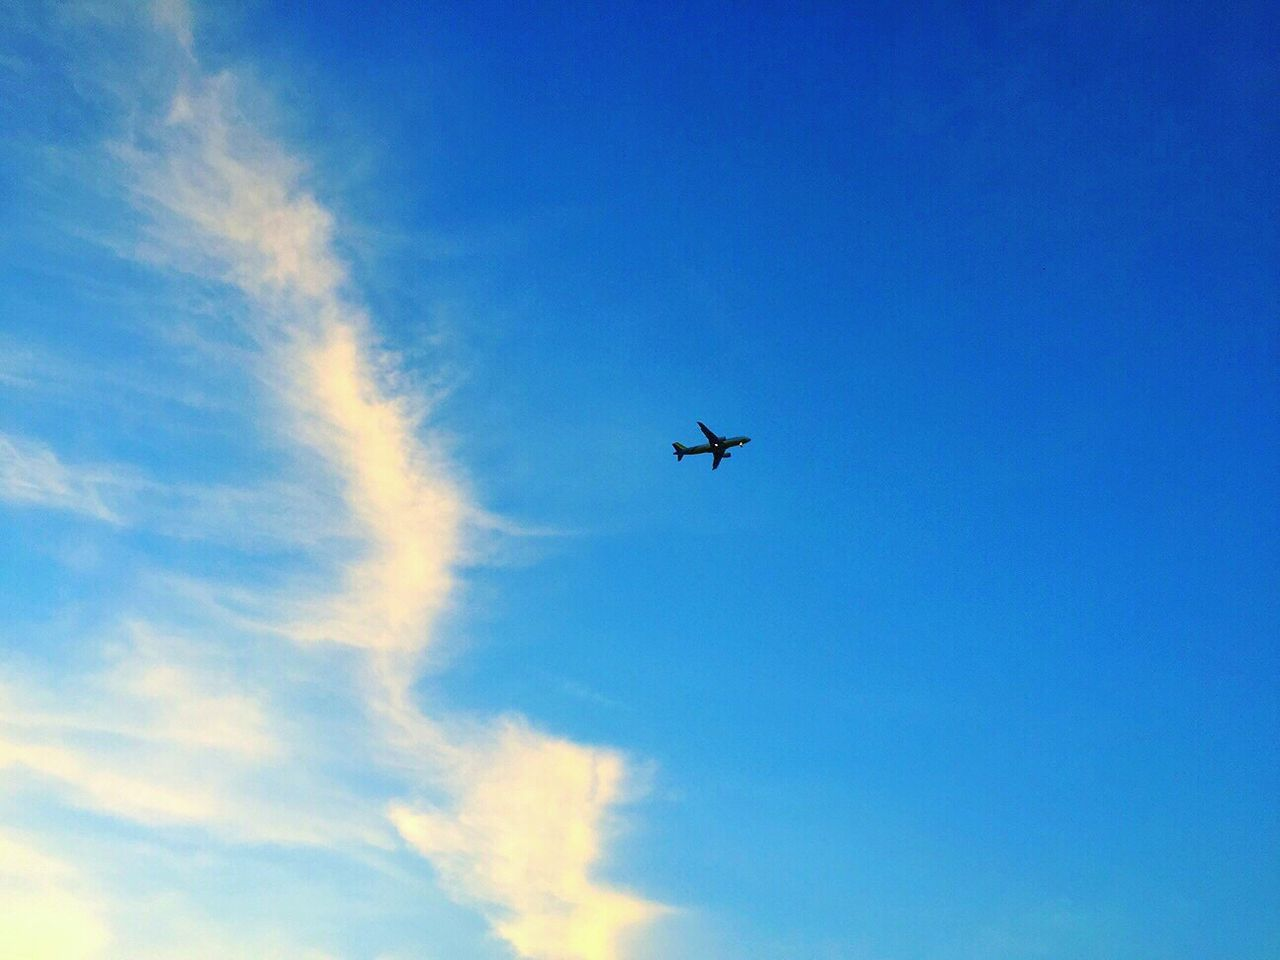 low angle view, flying, blue, sky, airplane, transportation, journey, air vehicle, outdoors, no people, day, nature